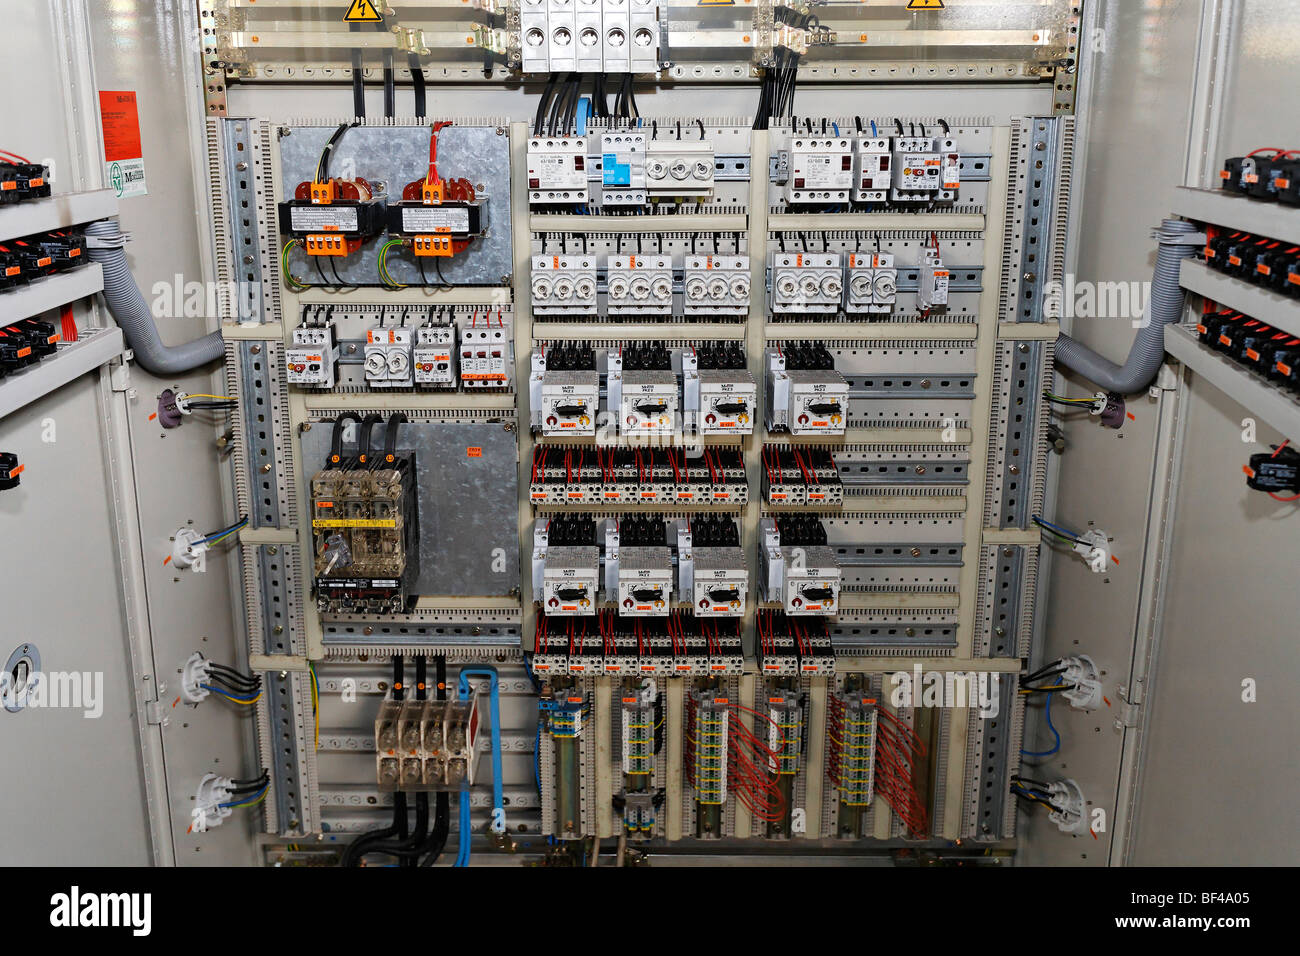 Awesome Fuse Box Electric Control Room In A Disused Factory Building Largest Home Design Picture Inspirations Pitcheantrous